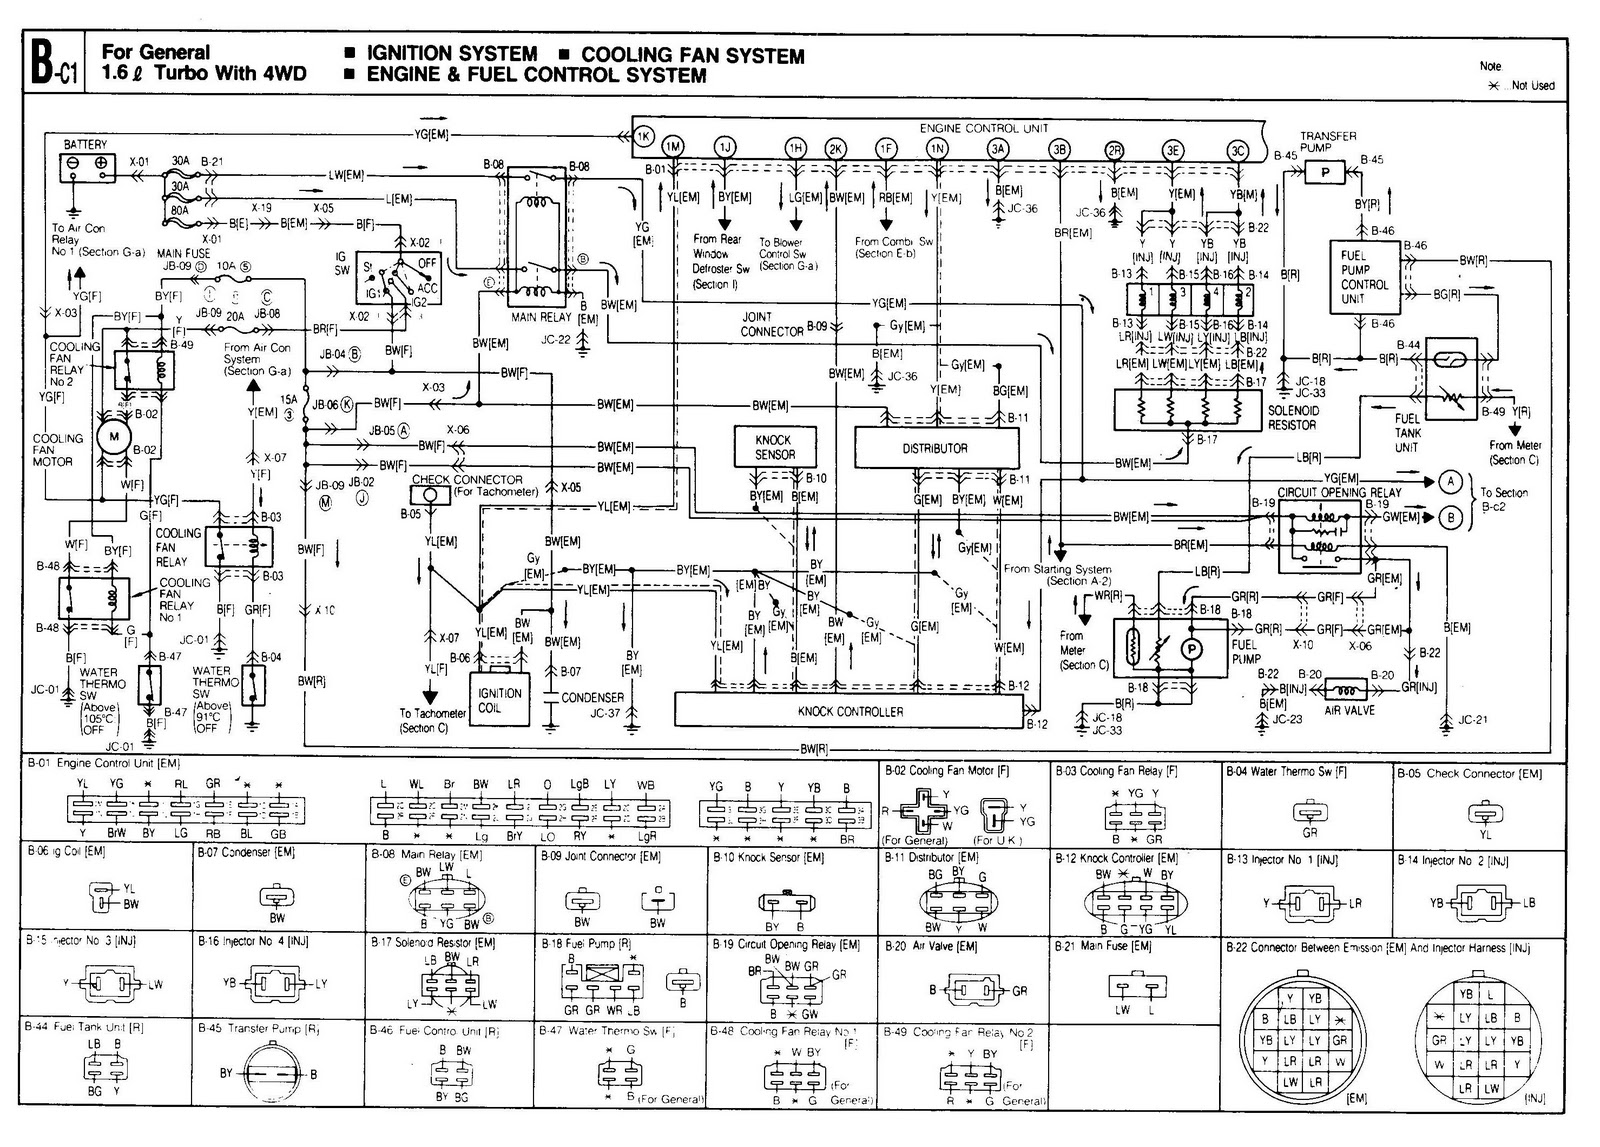 mazda rx 8 wiring diagram mazda wiring diagrams online mazda bp wiring diagram mazda wiring diagrams